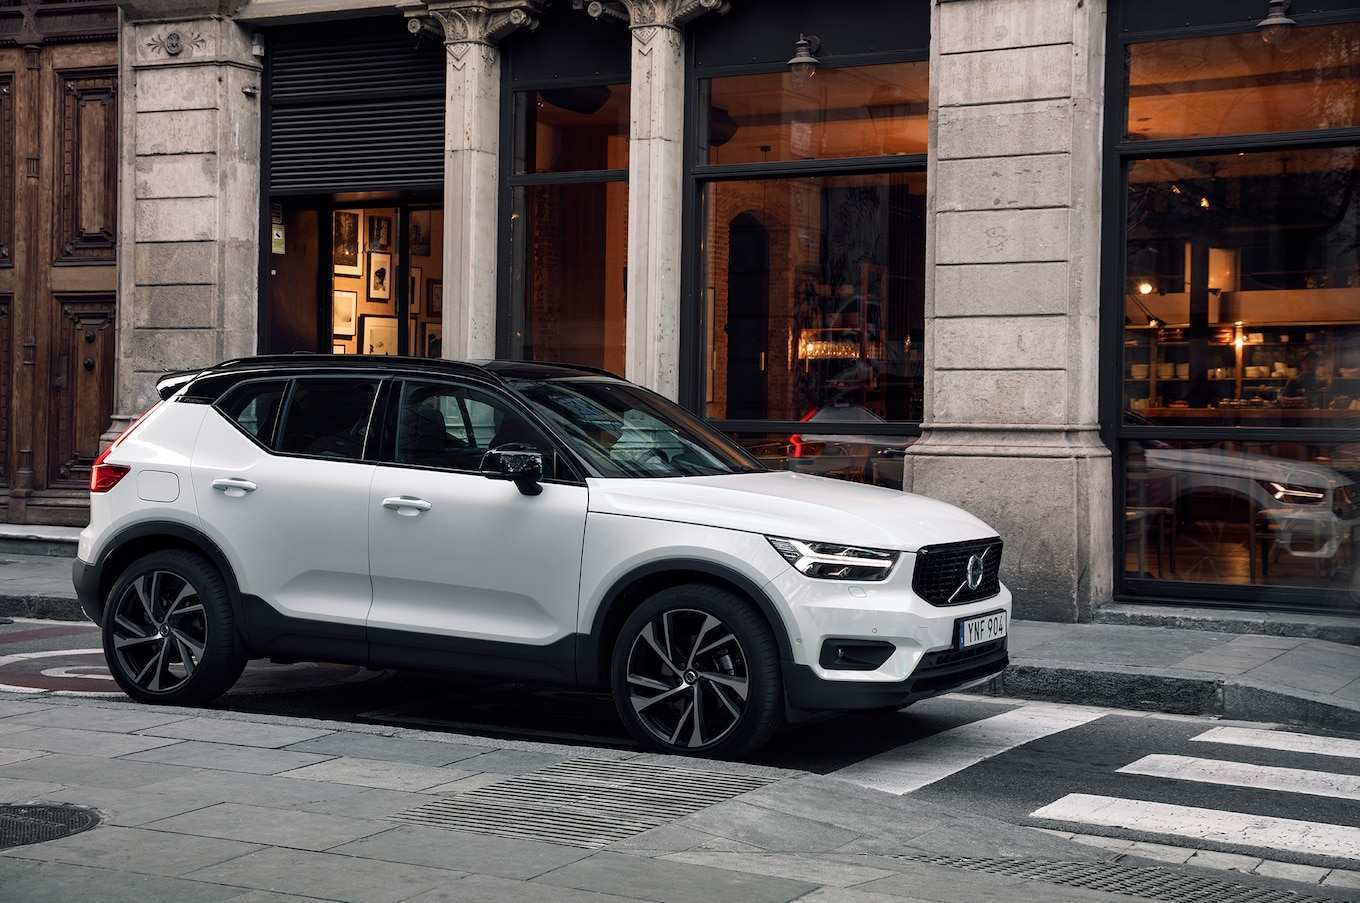 43 Concept of New Volvo 2019 Jeep Overview And Price Specs by New Volvo 2019 Jeep Overview And Price